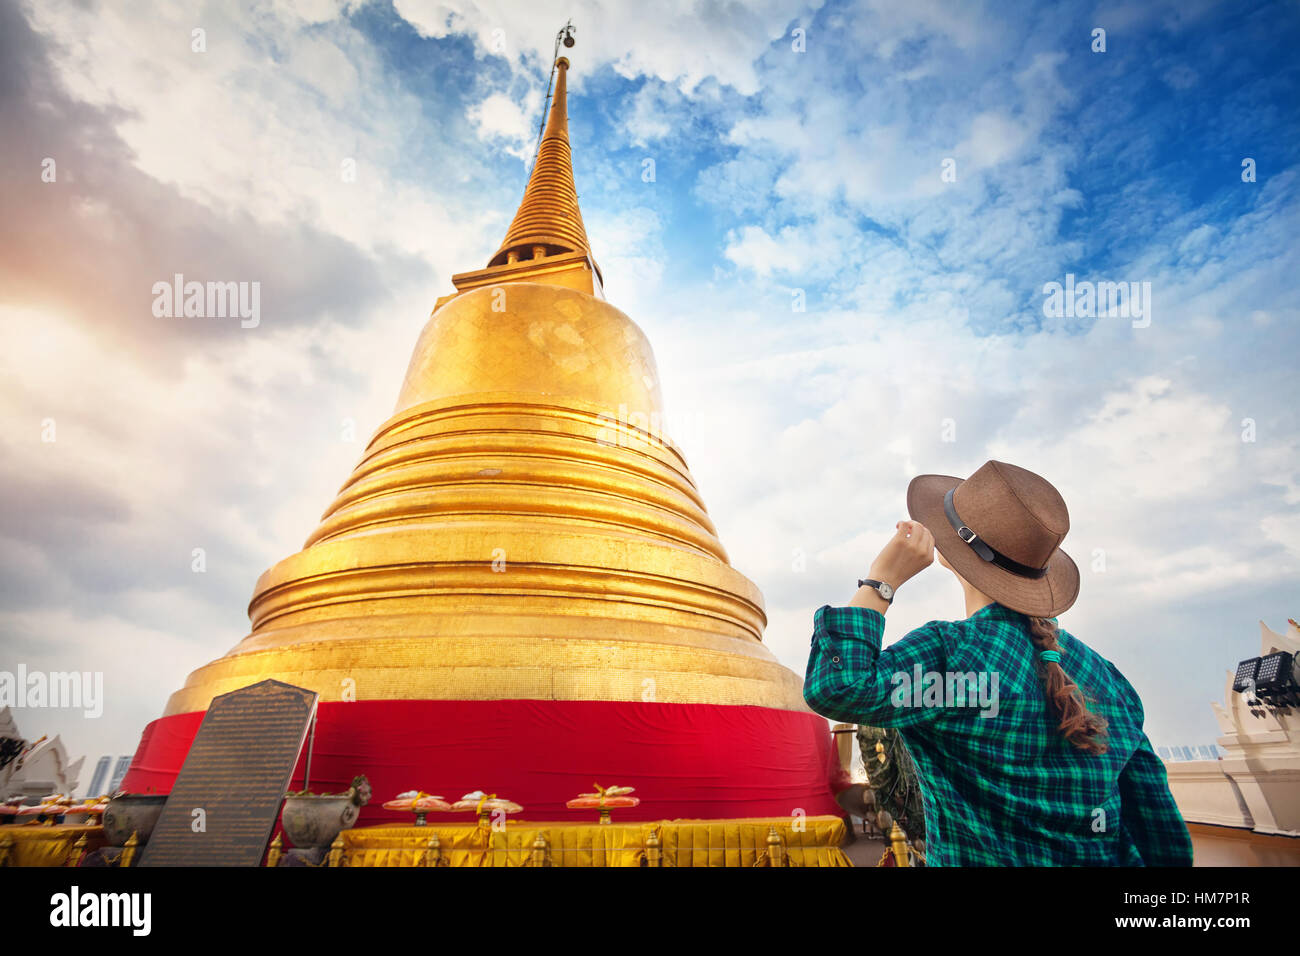 Tourist woman in hat and green checked shirt looking at big golden Stupa in Wat Saket temple in Bangkok, Thailand - Stock Image